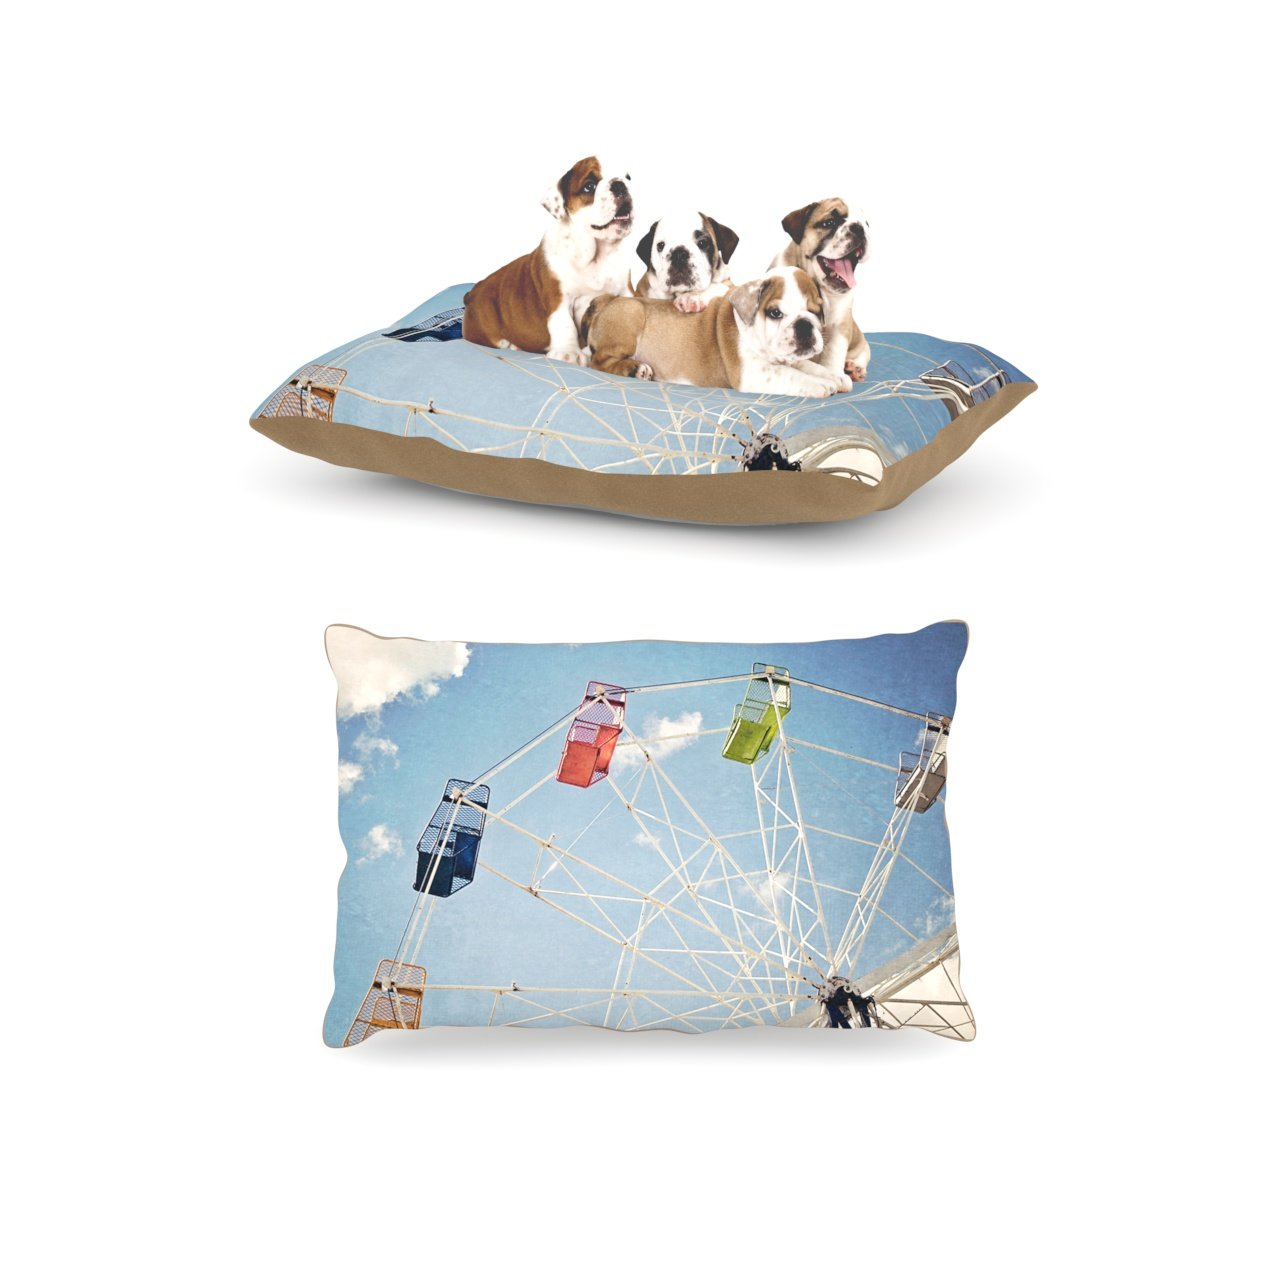 L 30 Inches x 40 Inches Kess InHouse Susannah Tucker The Show Came to Town Carnival Dog Bed